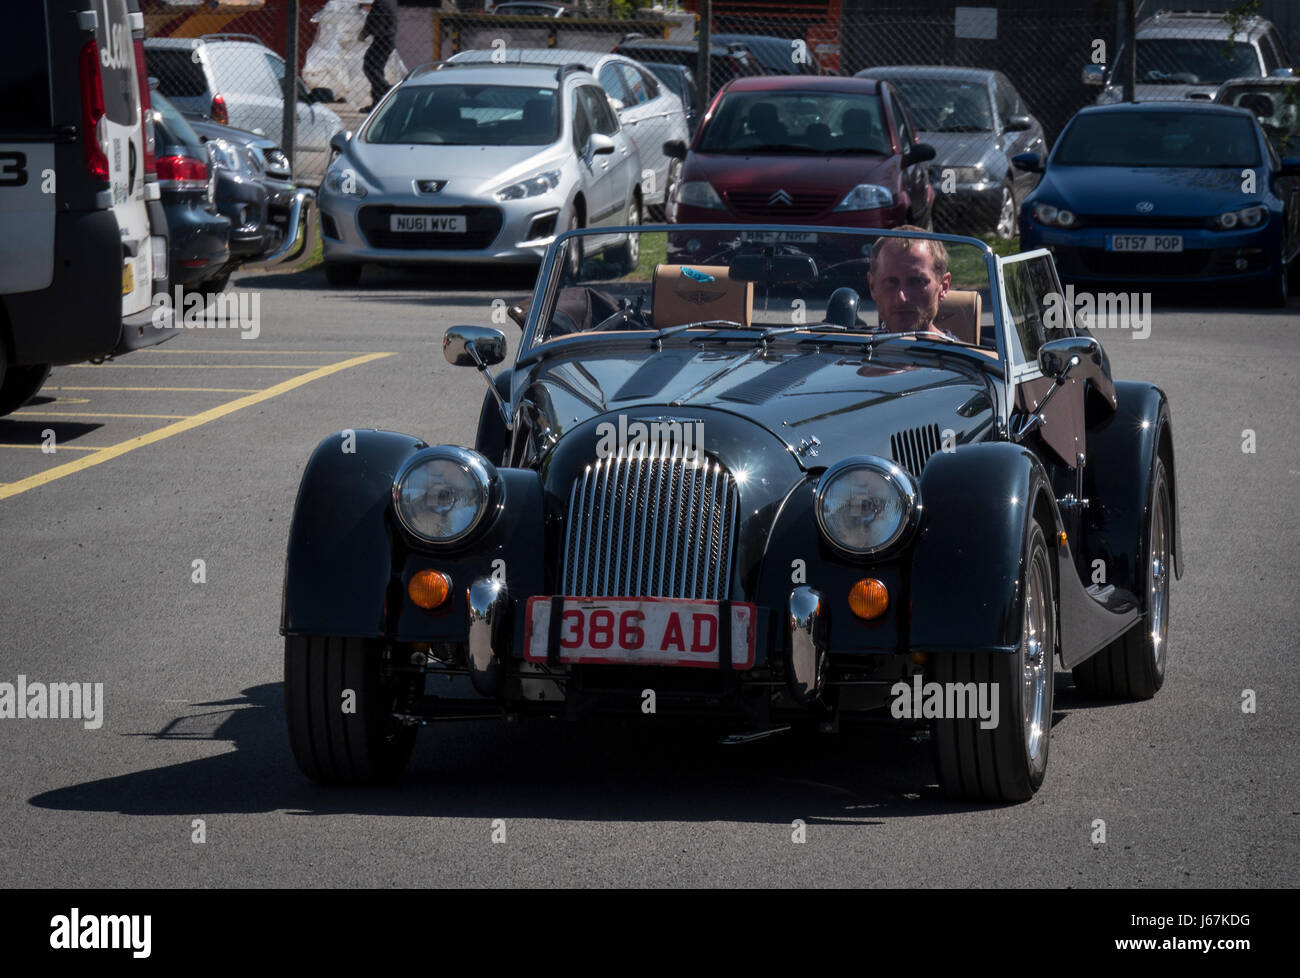 Morgan Motor Cars are still made in Malvern, England as they were in ...